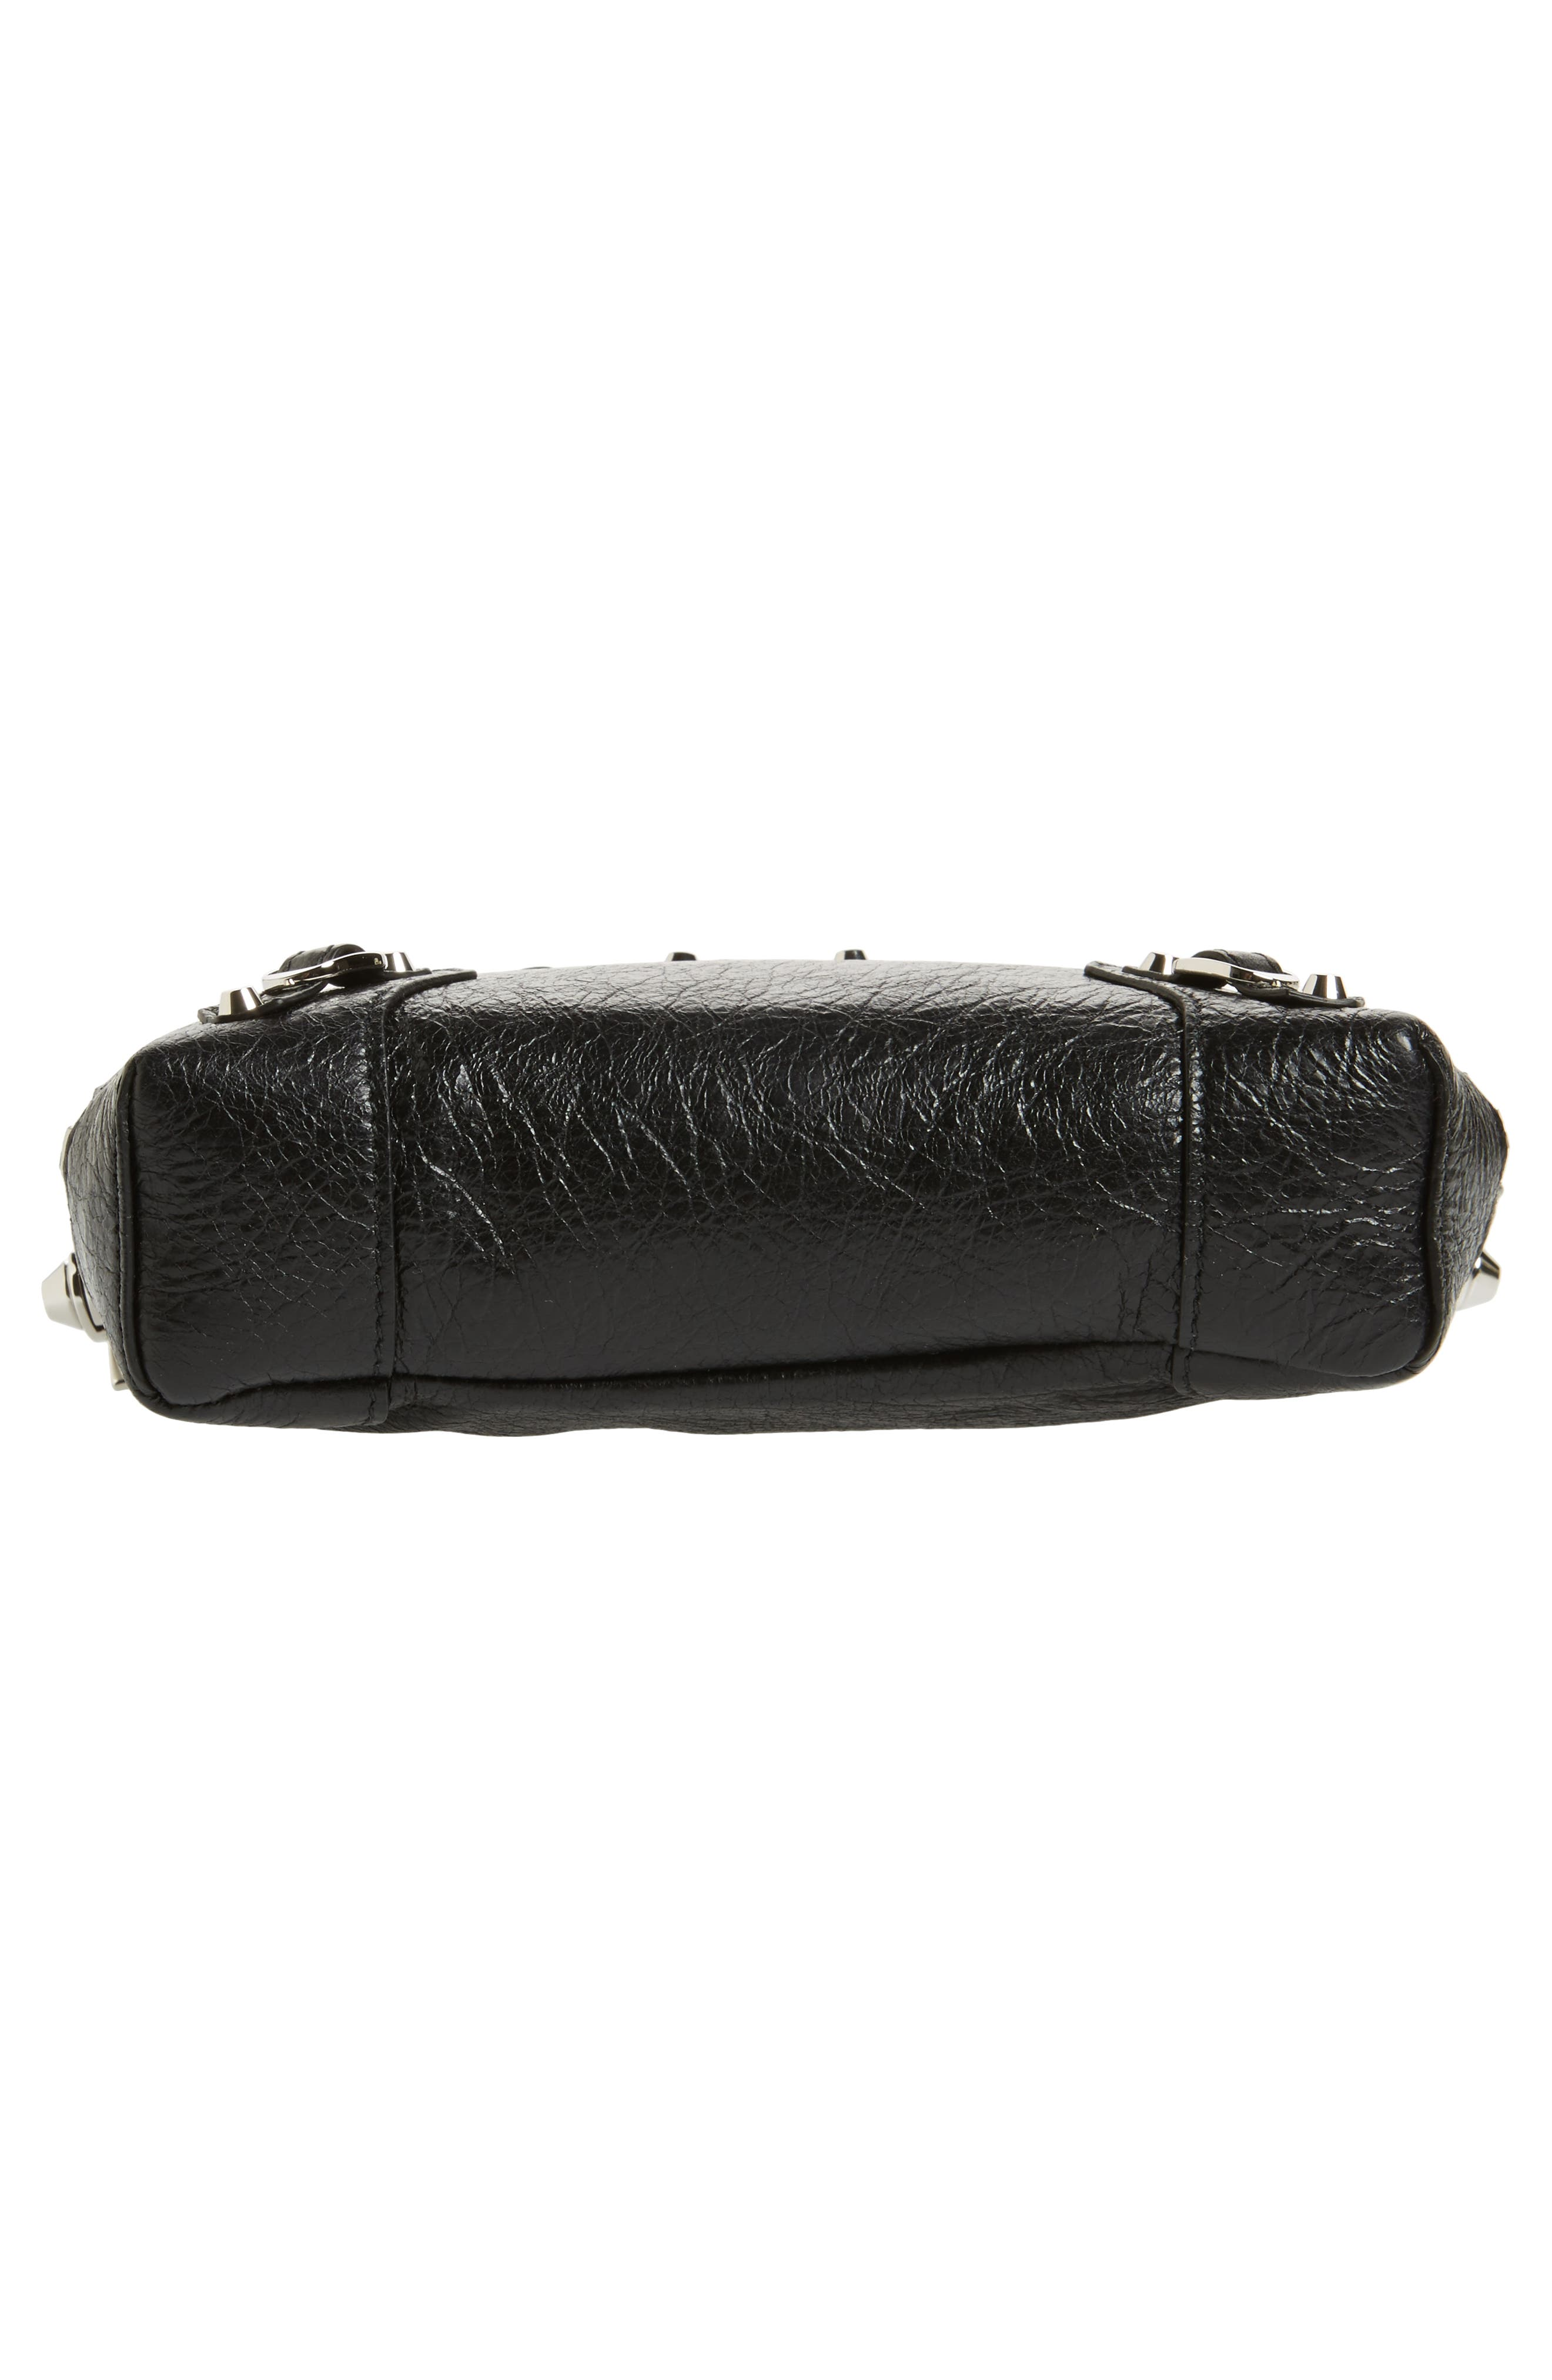 Extra Small Classic Reporter Leather Shoulder Bag,                             Alternate thumbnail 6, color,                             Noir